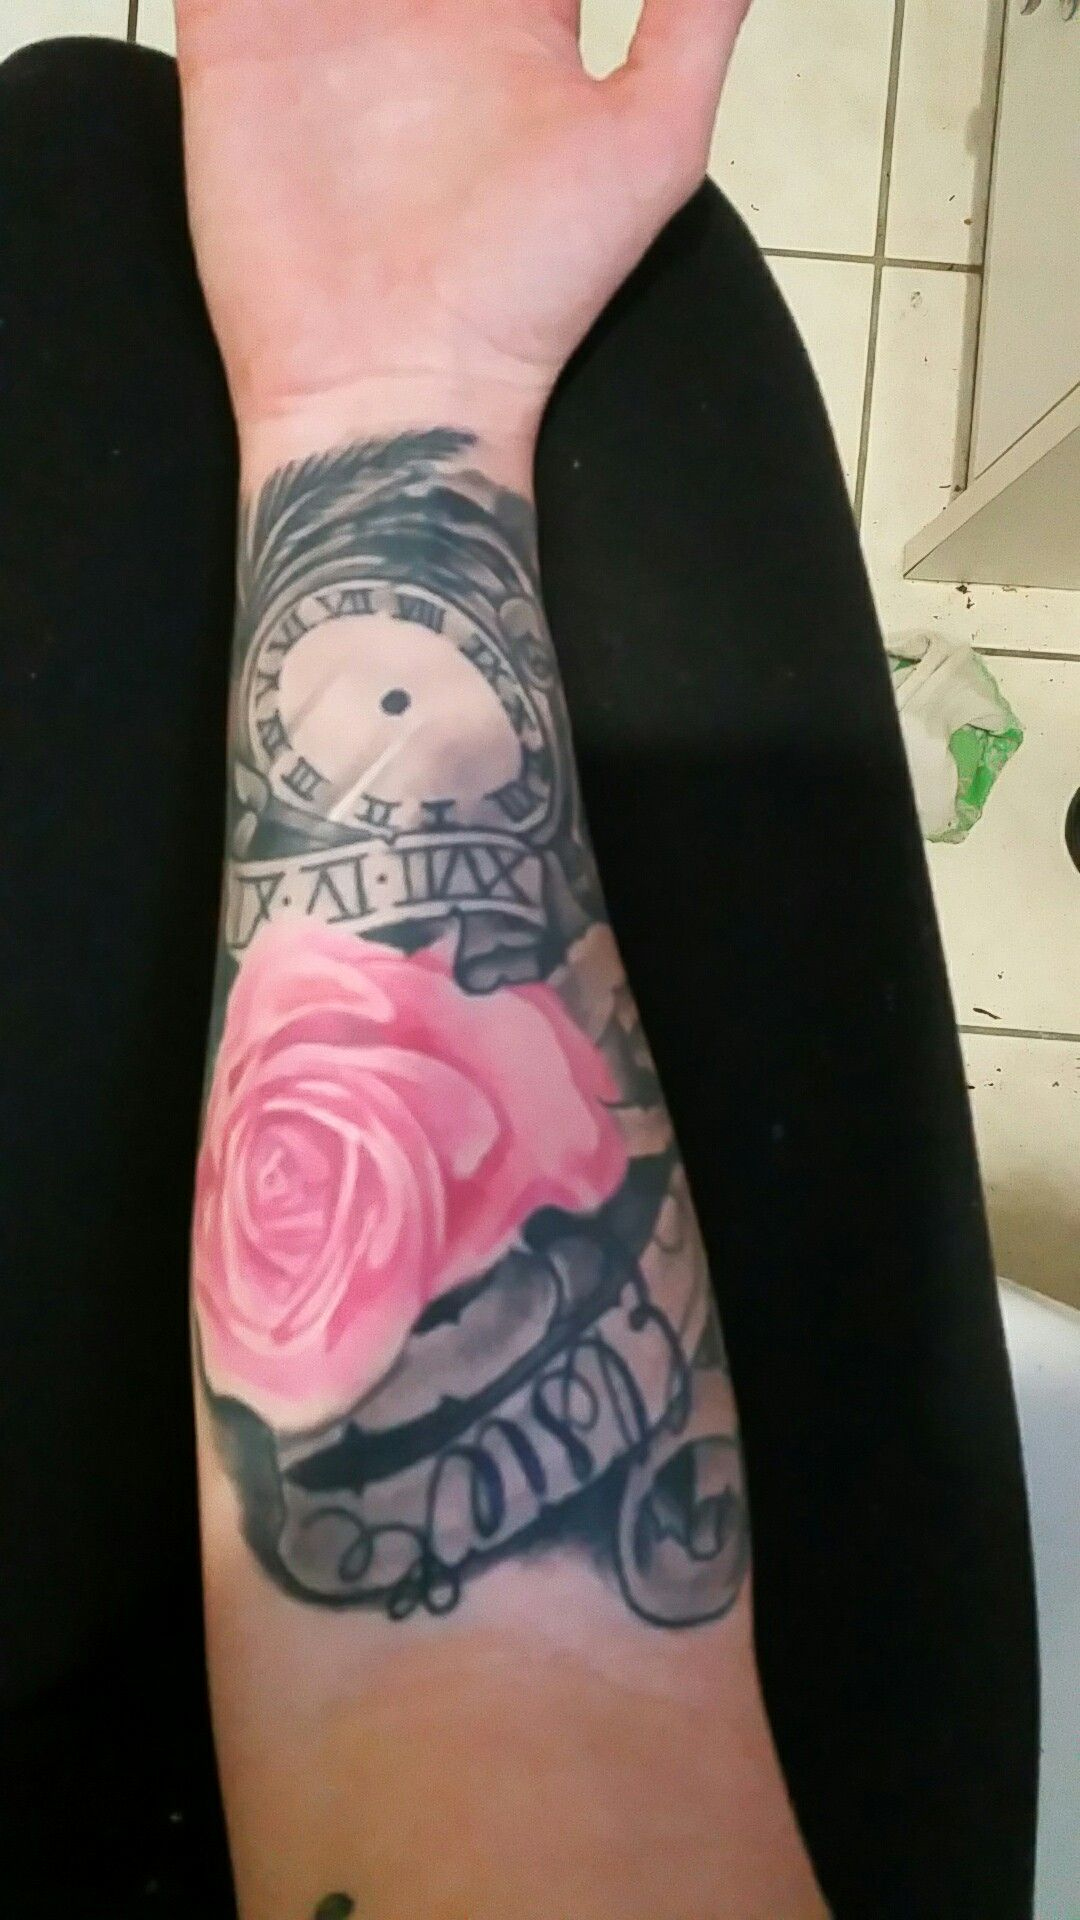 Cover up on my wrist tattoo for my daughter tattoo for Wrist tattoo covers for work